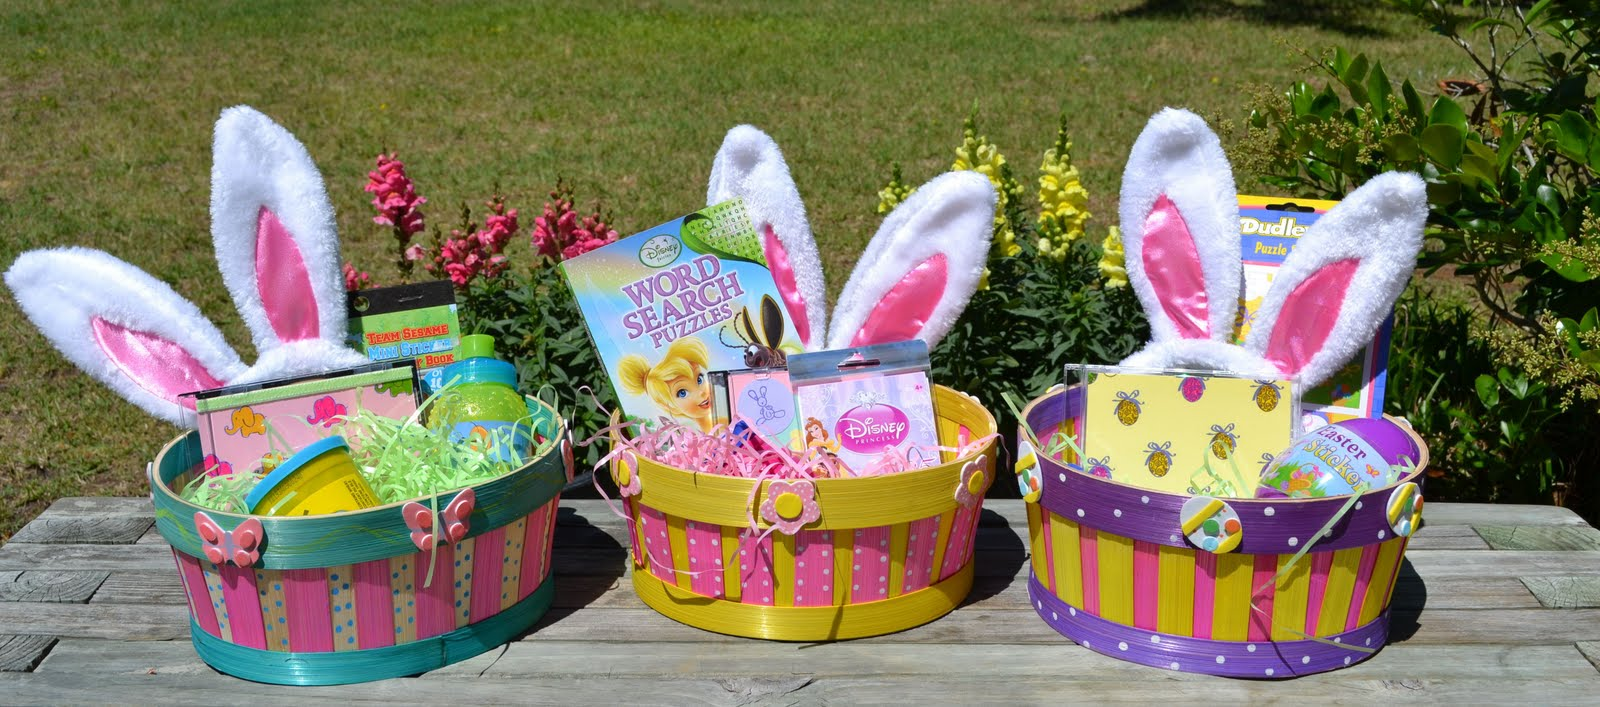 Stamp camp mollys easter egg hunt baskets here are alexander ella and elliotts ella is my goddaughter and i included a bunch of disney princess for her she loves tinker bell negle